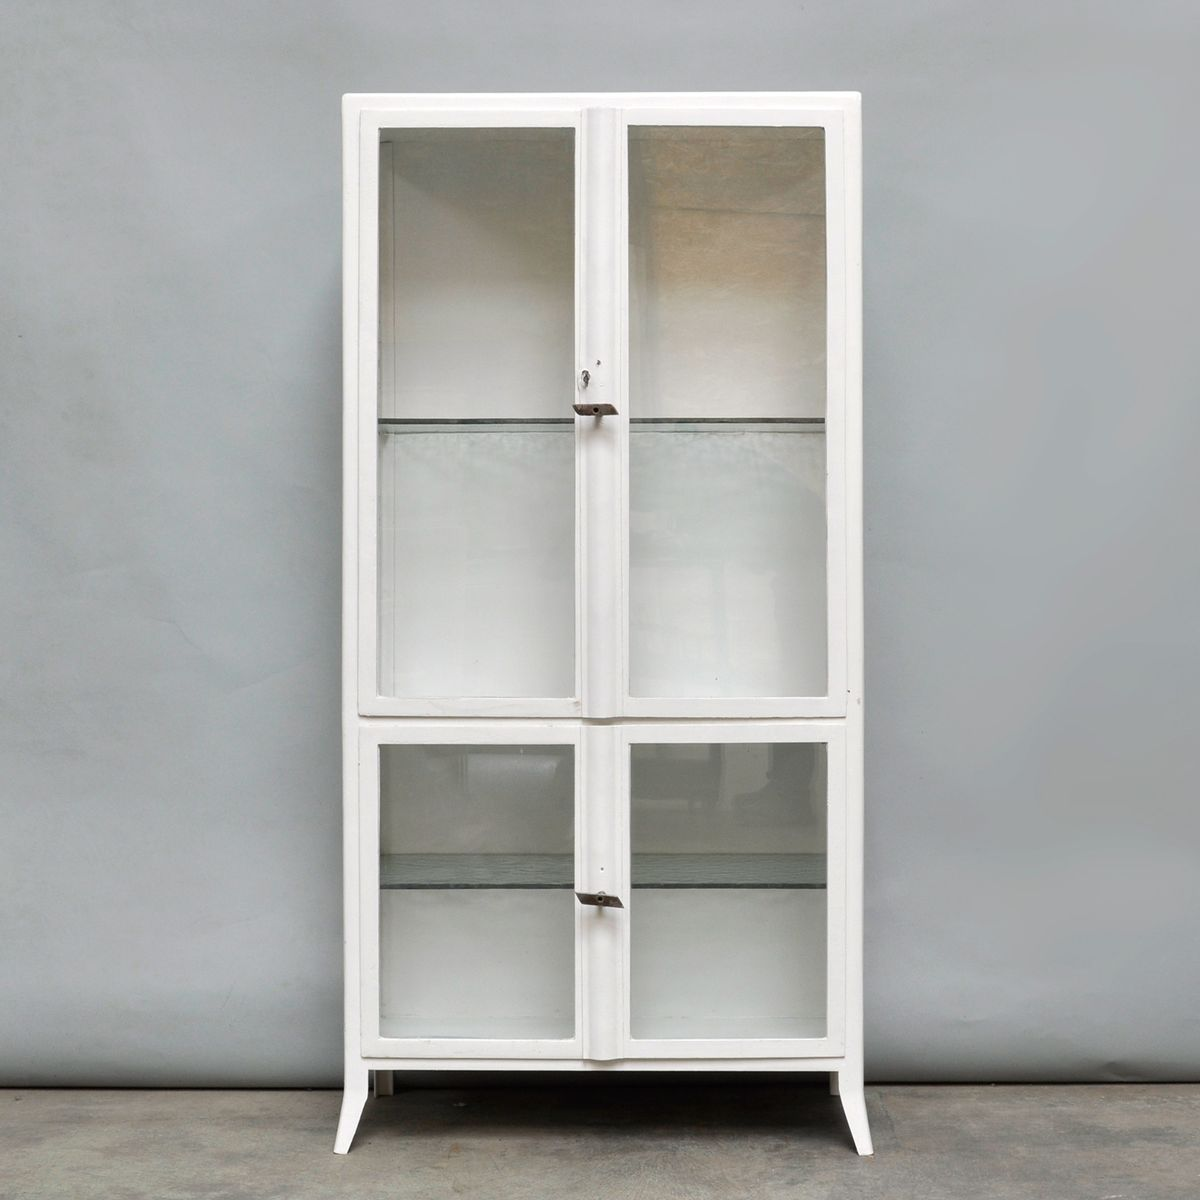 Exceptionnel Vintage Medical Cabinet In Iron U0026 Glass, 1950s